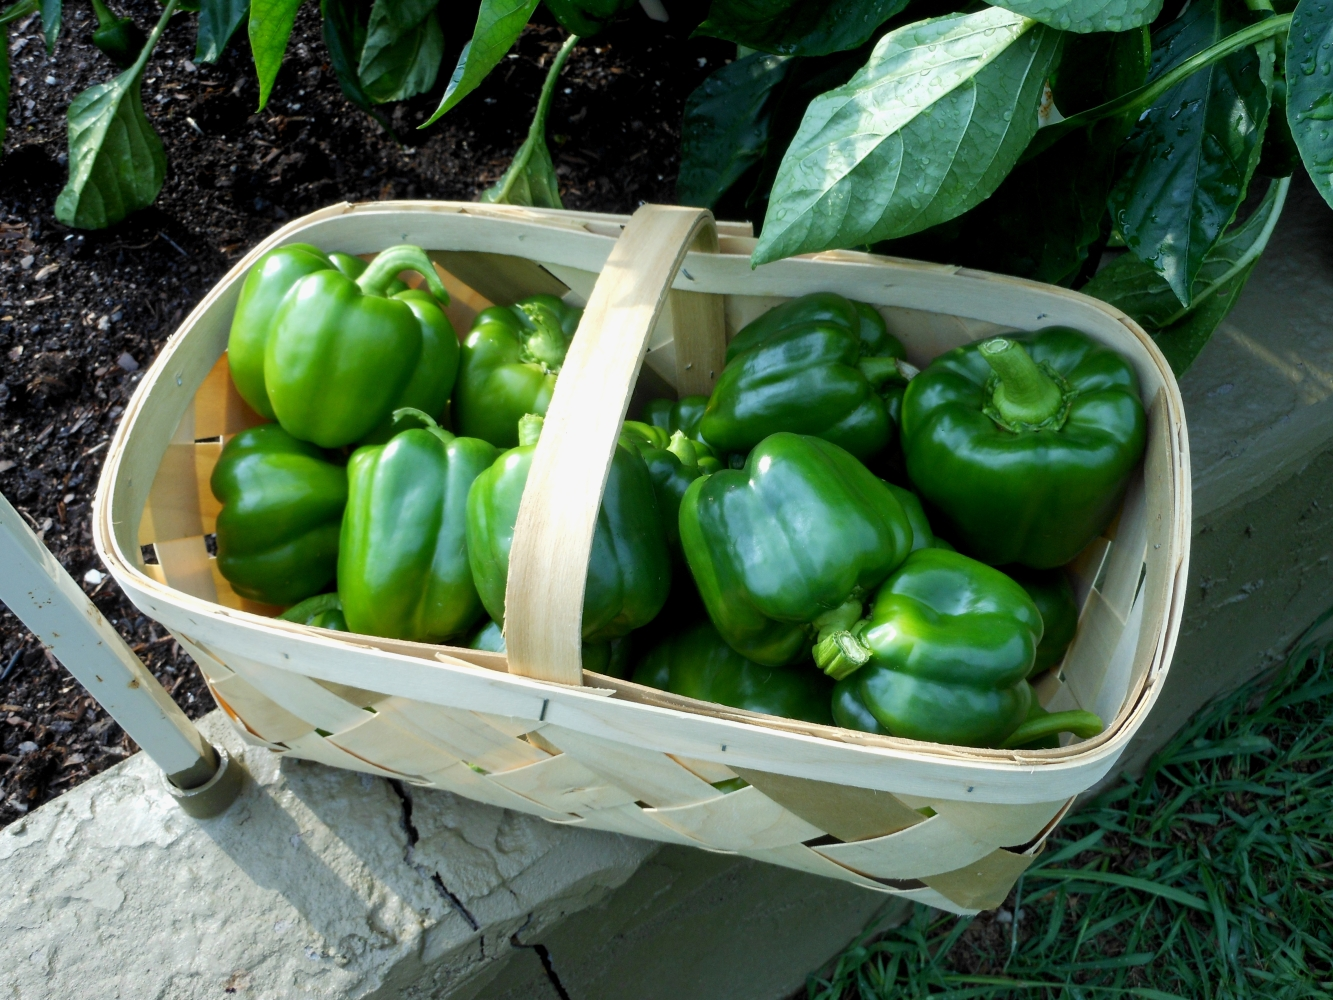 06-27-14_Bell_Pepper_Basket_01